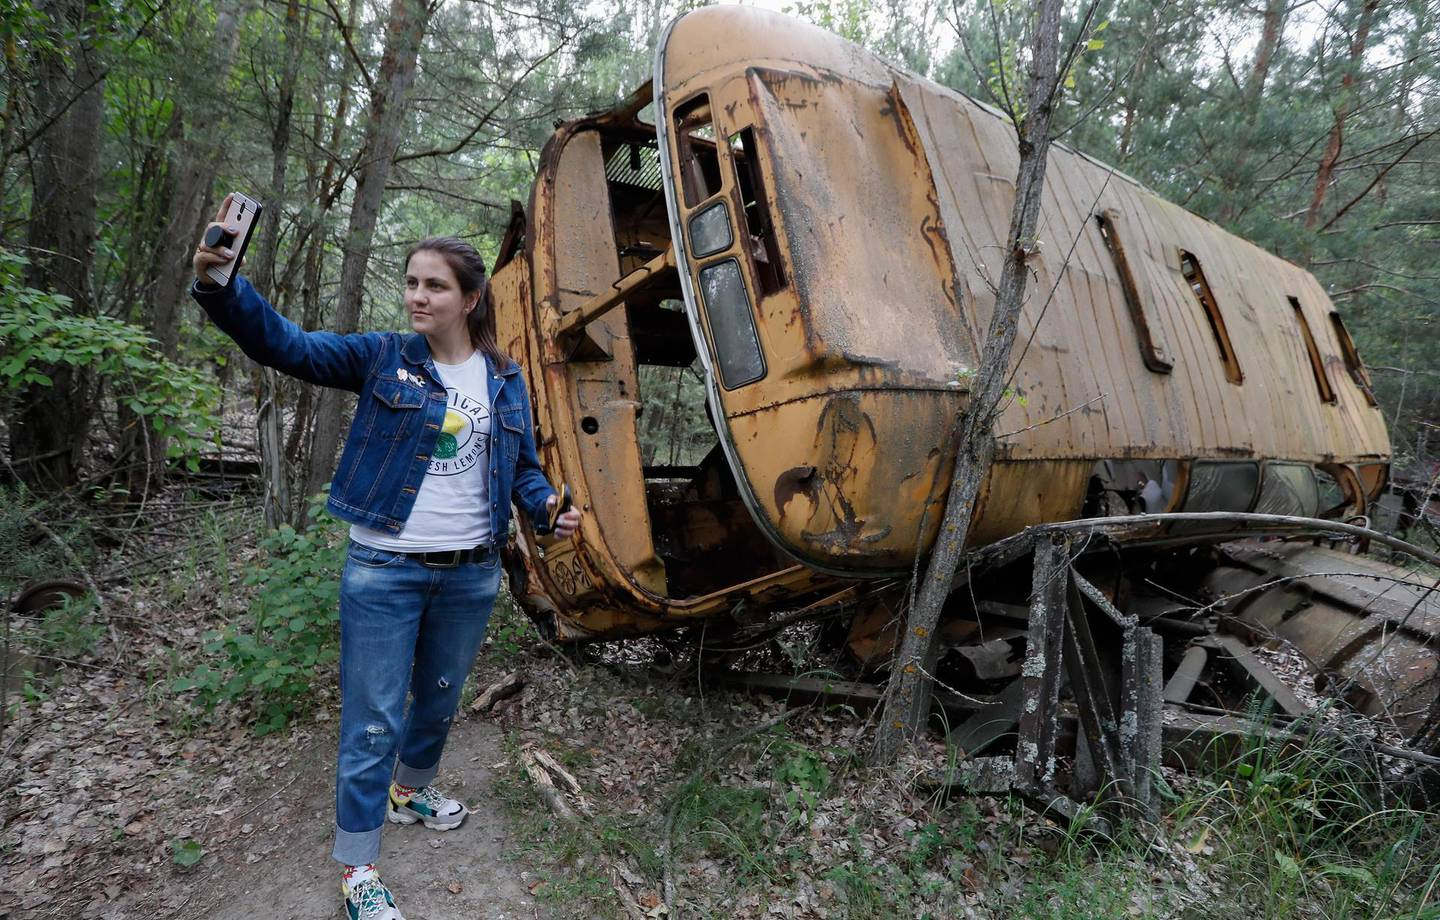 epaselect epa07633614 A visitor takes a selfie with an abandoned bus during a tour in Chernobyl, Ukraine, 07 June 2019. The miniseries Chernobyl (2019) made by HBO depicts the explosion`s aftermath, the vast clean-up operation and the subsequent inquiry. The success of a U.S. television miniseries examining the world`s worst nuclear accident has driven up the number of tourists wanting to see the plant and the ghostly abandoned town of Prypyat as local media report.  EPA/SERGEY DOLZHENKO